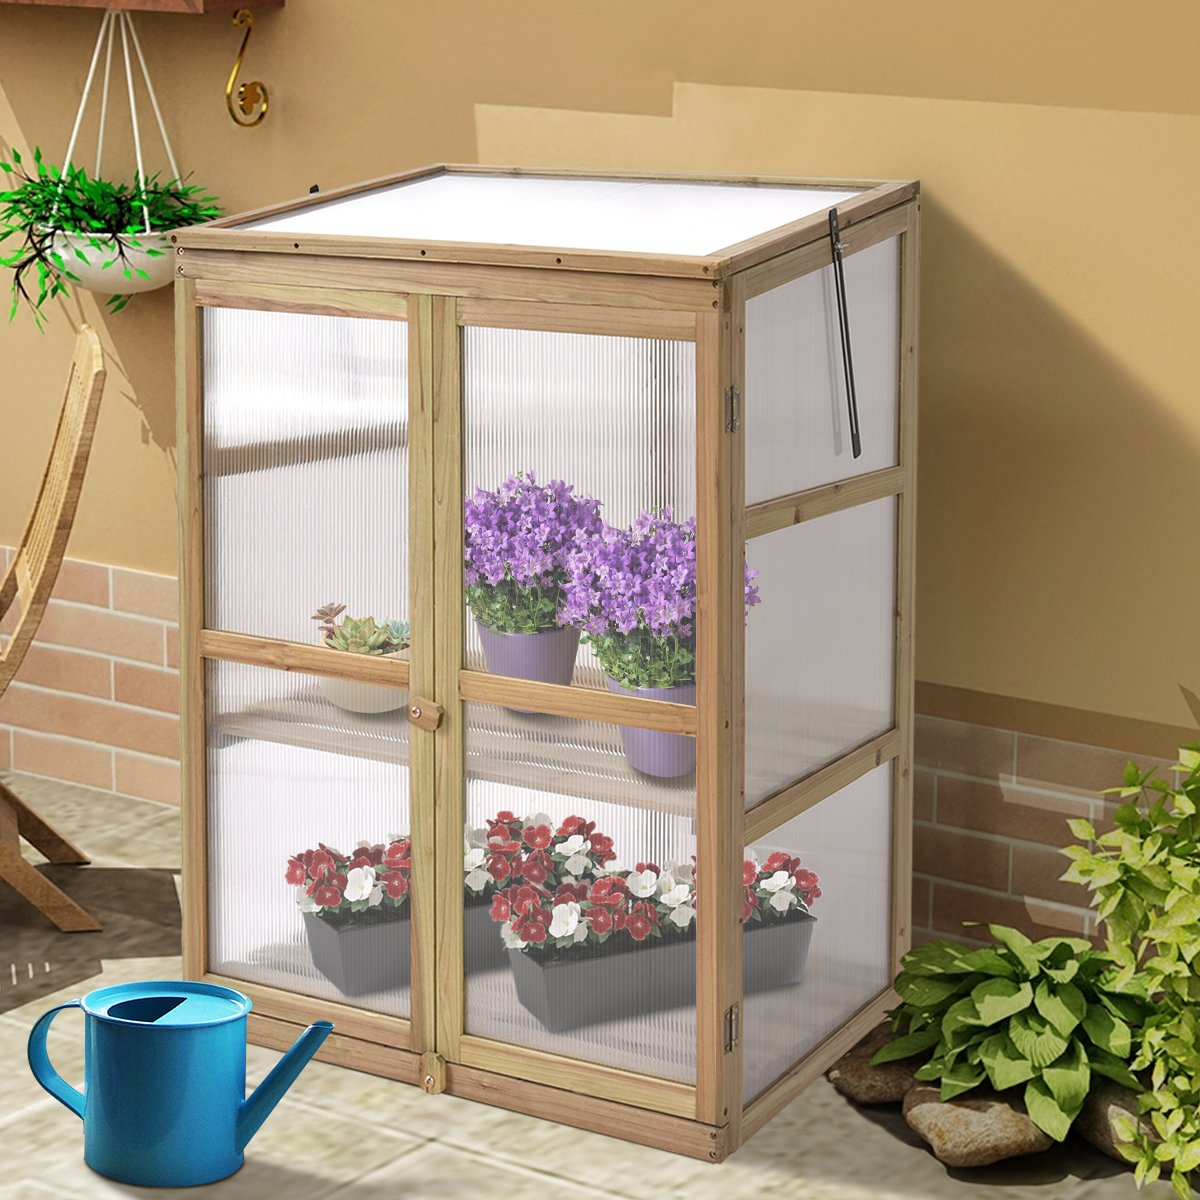 COSTWAY Garden Greenhouse Plants Shelf Plant Flower Growhouse Wooden/Timber & Polycarbonate 75 x 59 x 110 CM